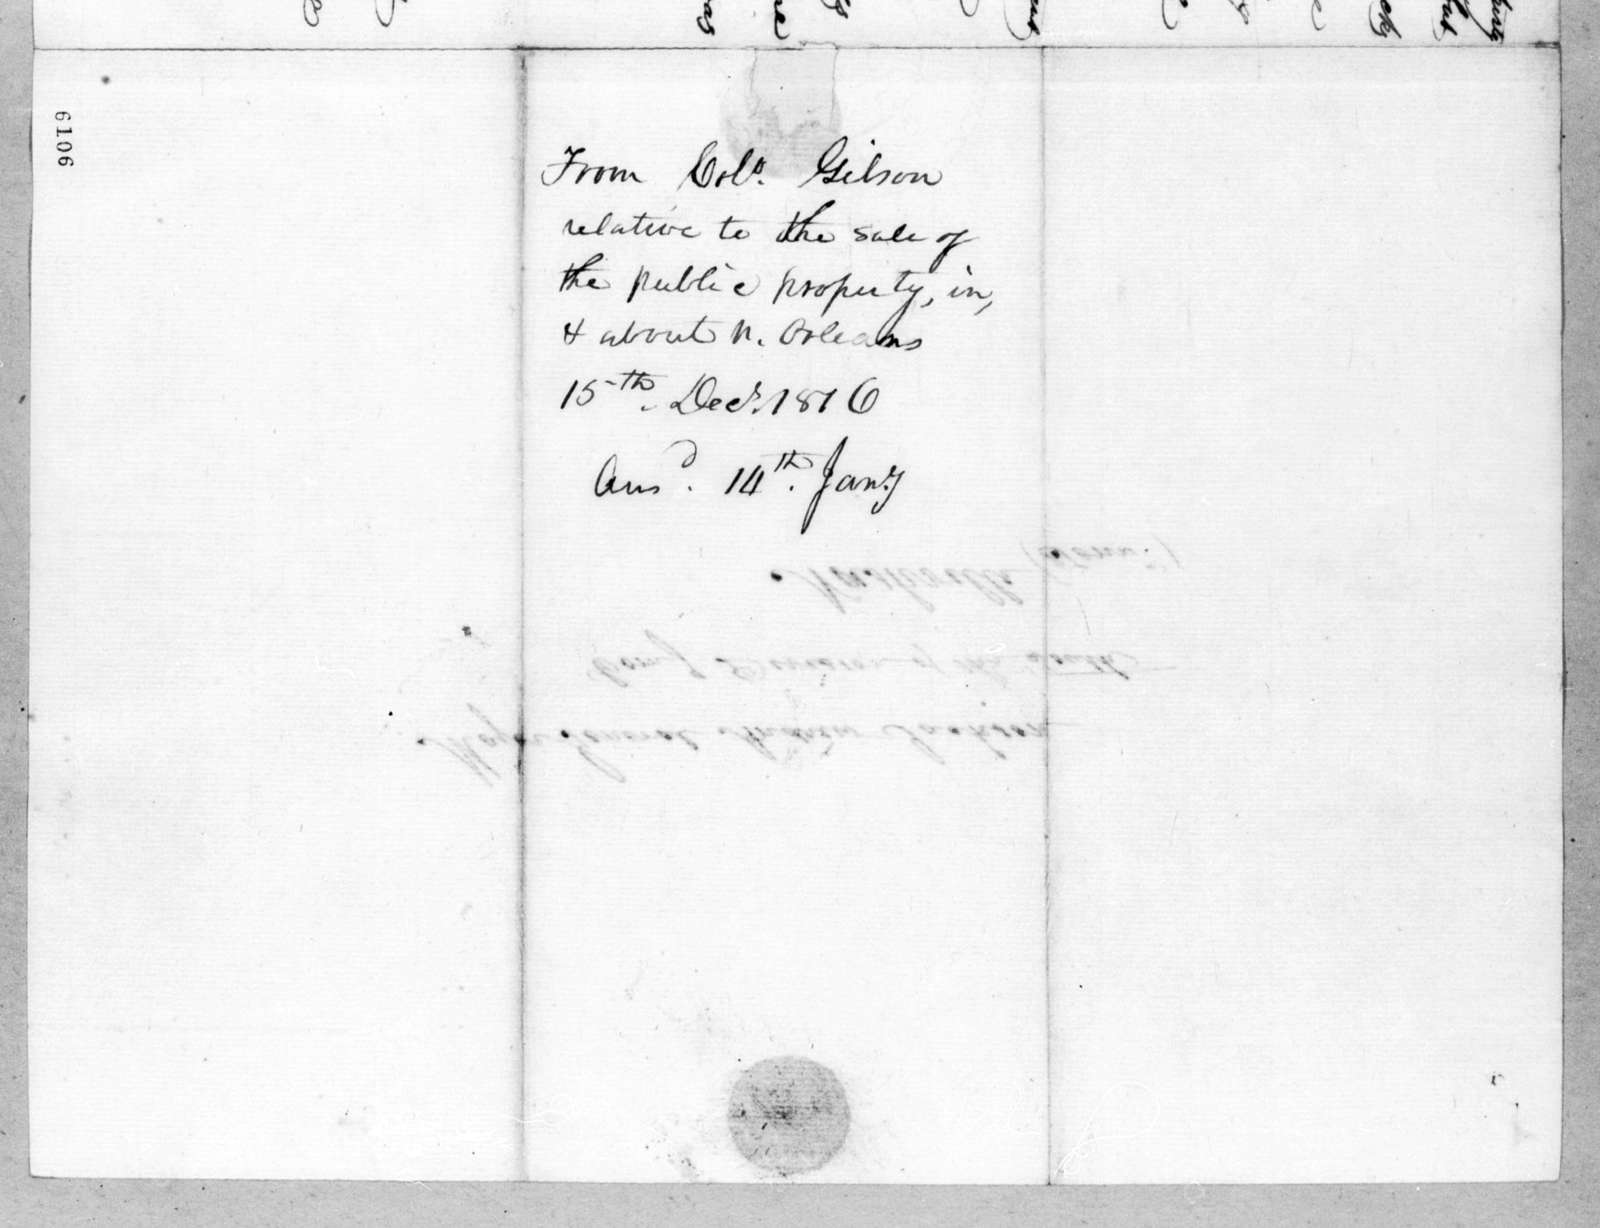 George Gibson to Andrew Jackson, December 15, 1816